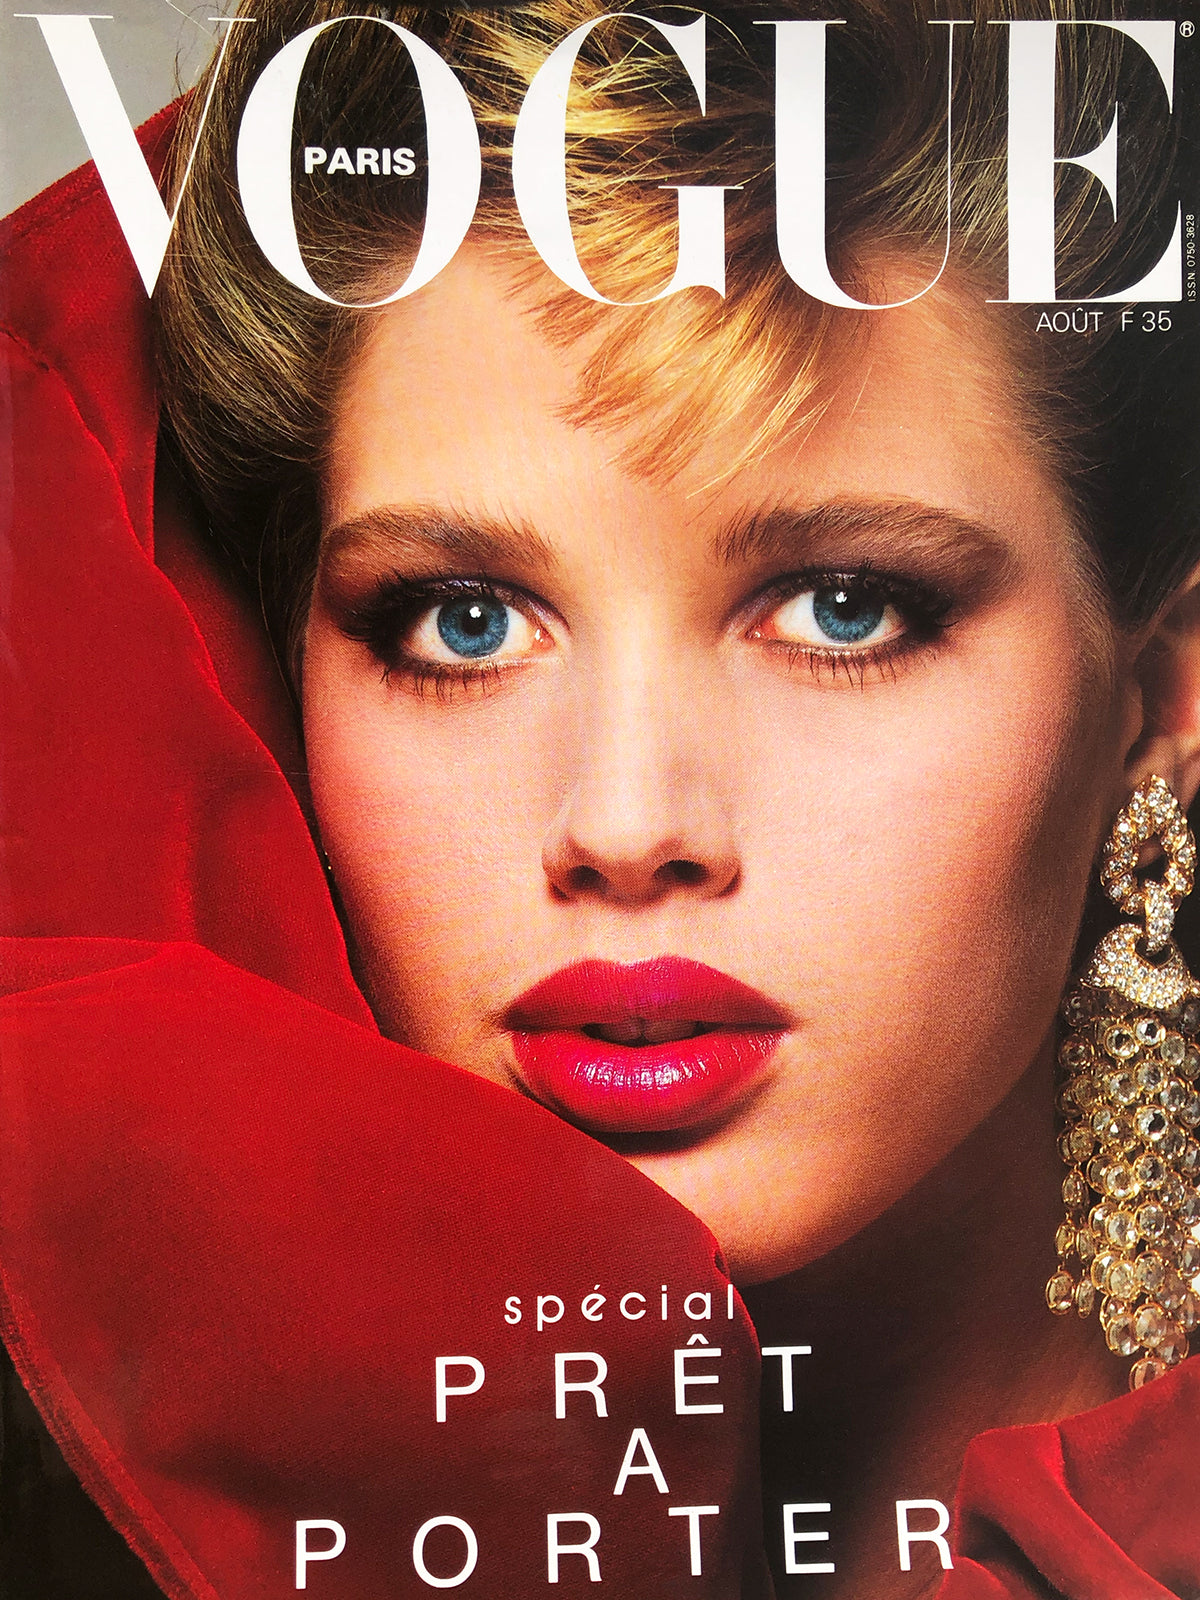 Archived - VOGUE Paris August 1983